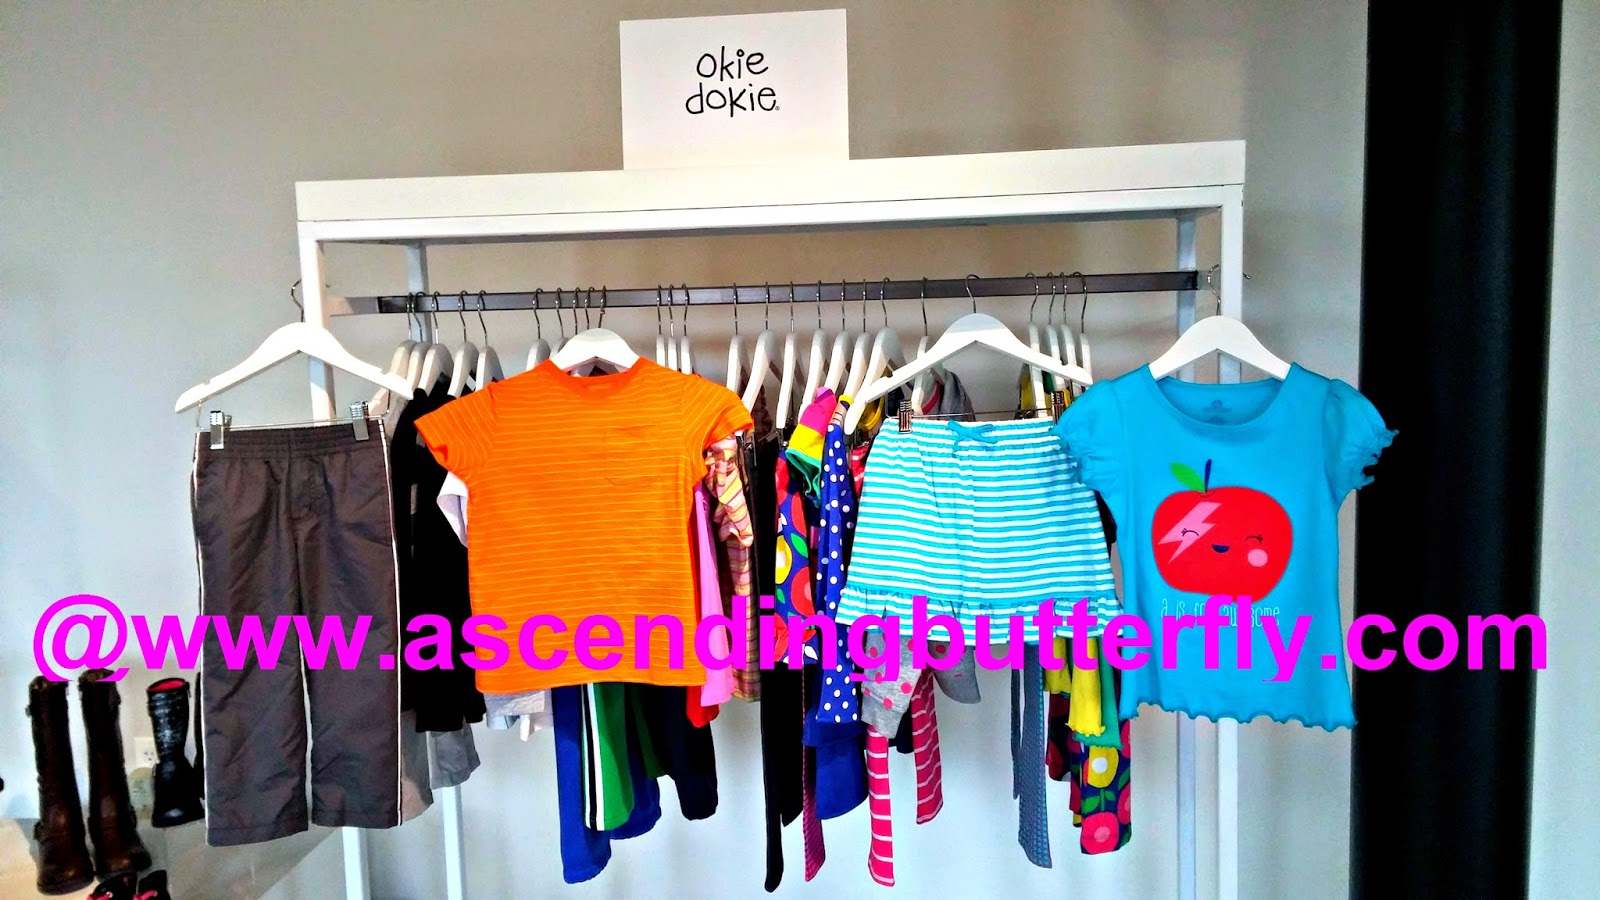 Okie Dokie for Girls looks via JCPenney 2014 Back-to-School Press Preview, Girls Fashion Clothing